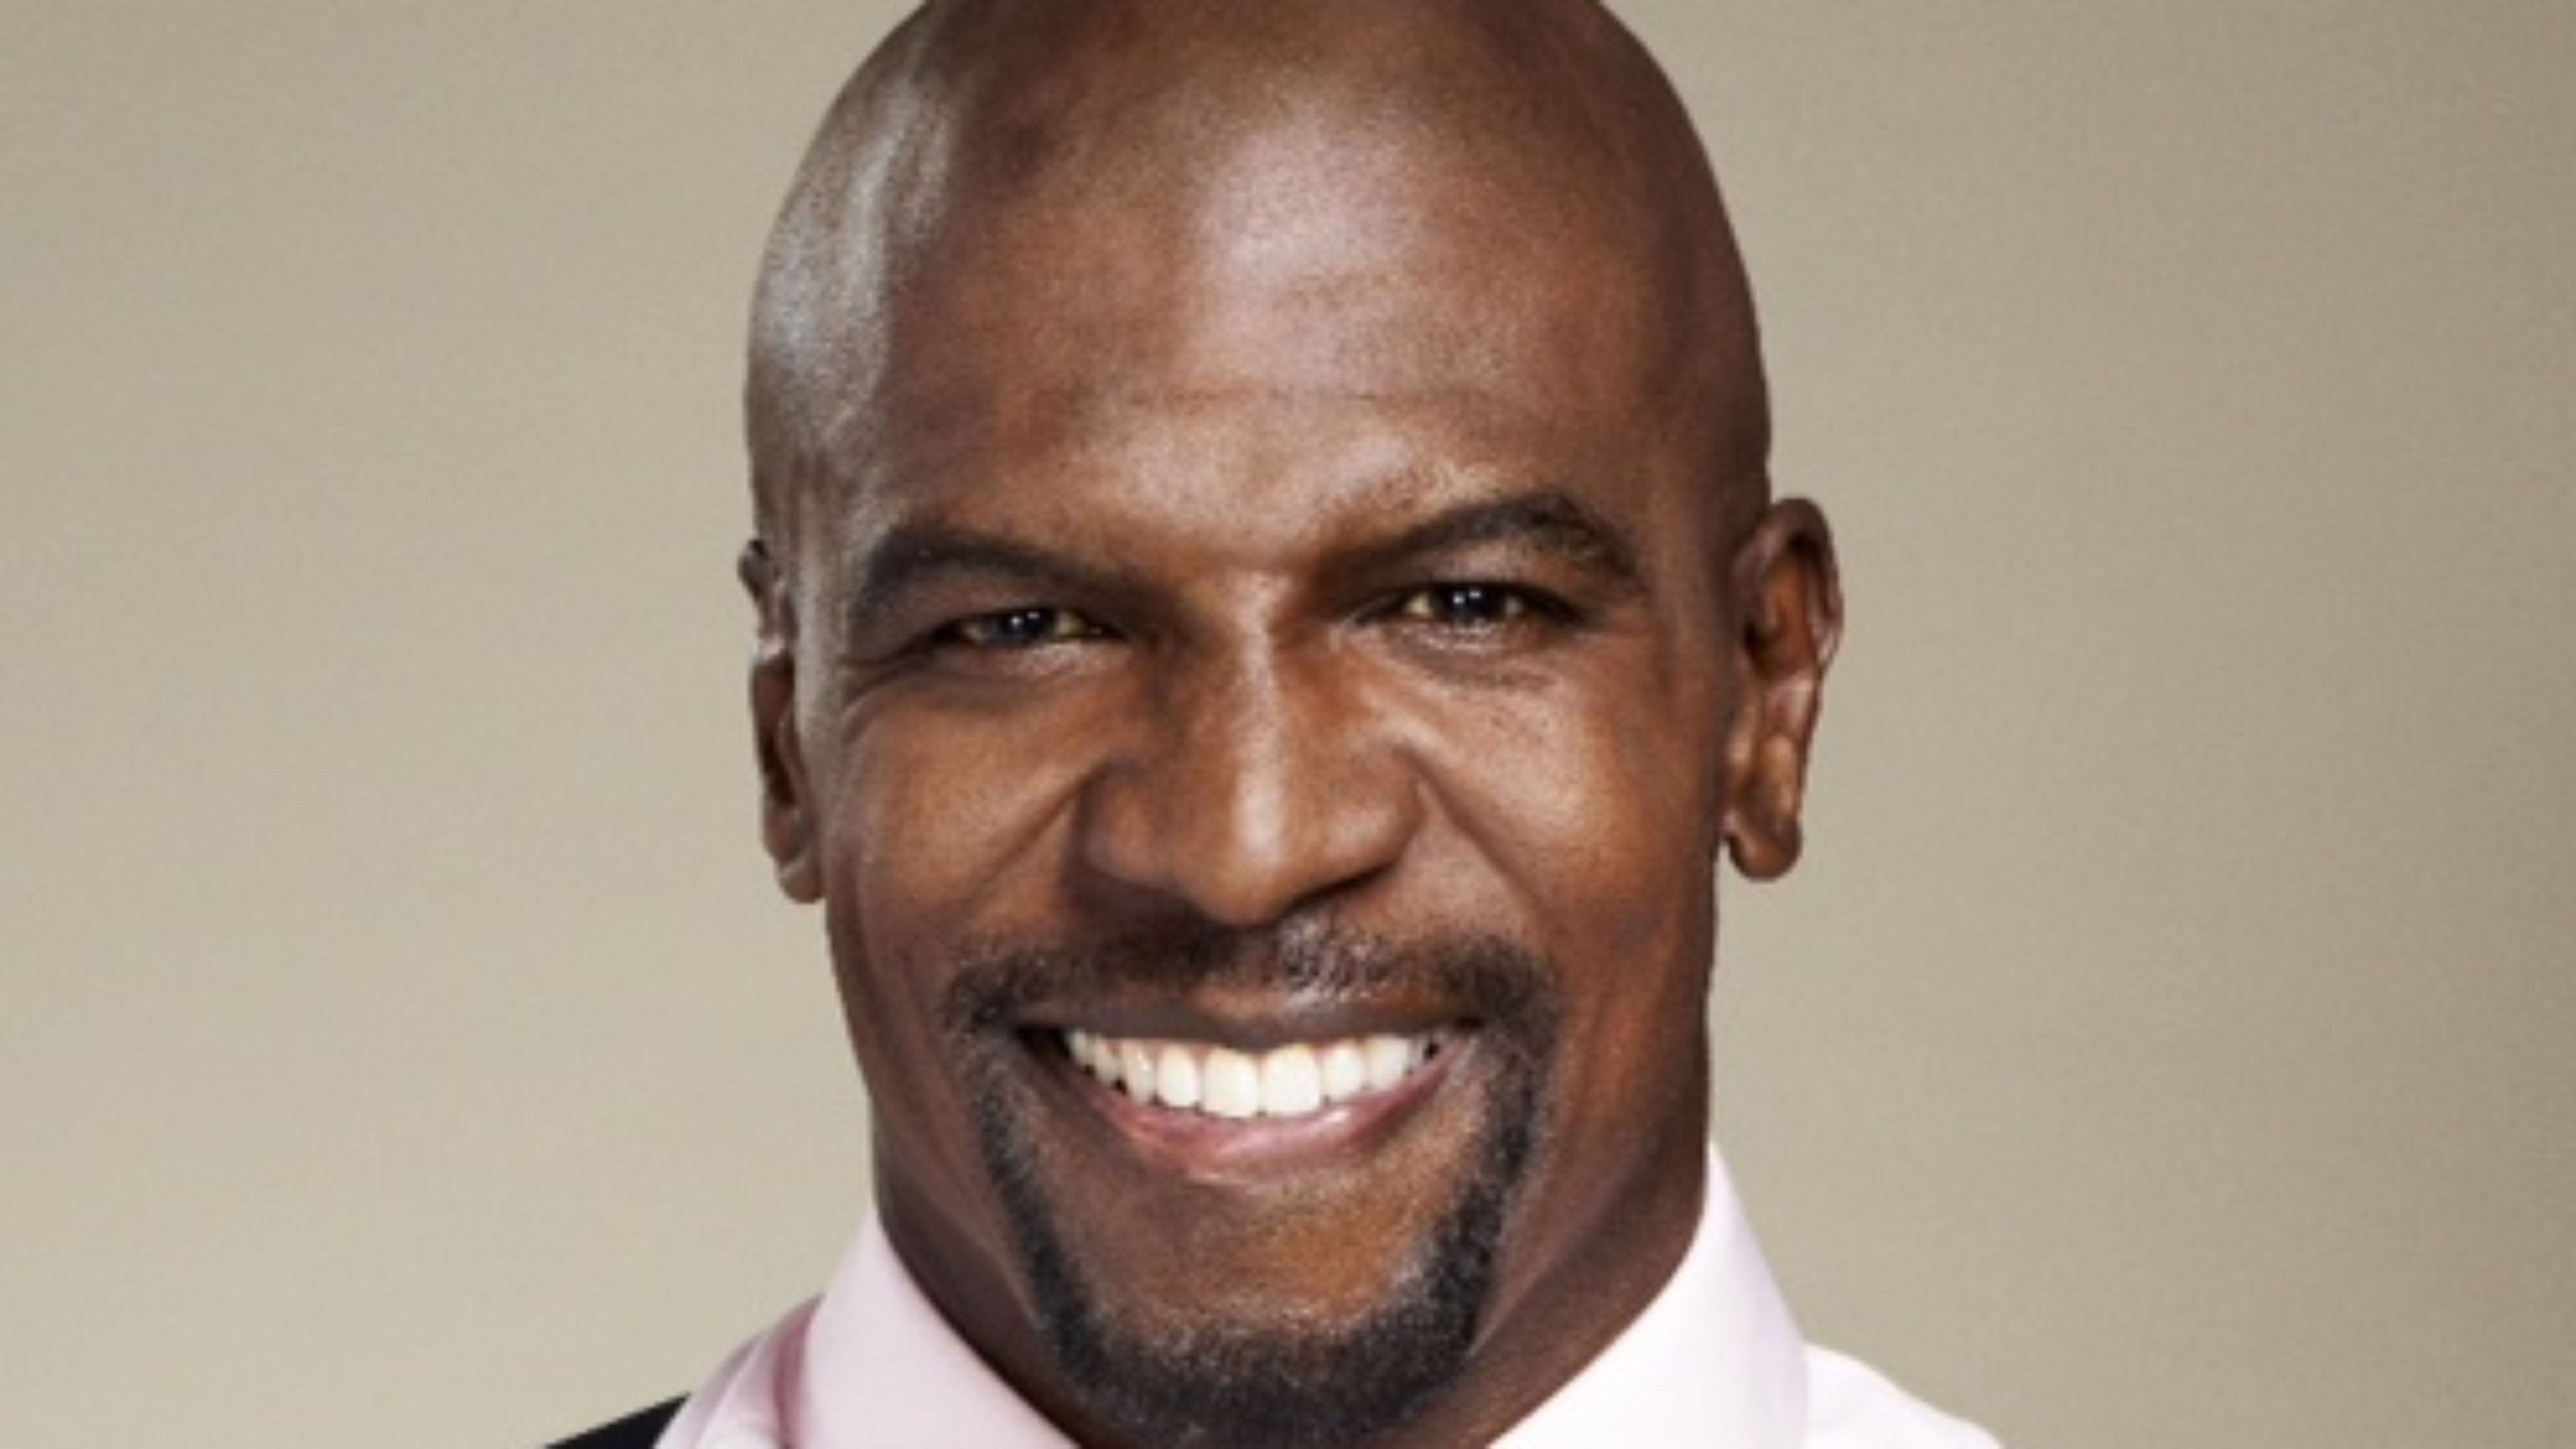 Fresh Terry Crews Wallpaper HD Wallpaper